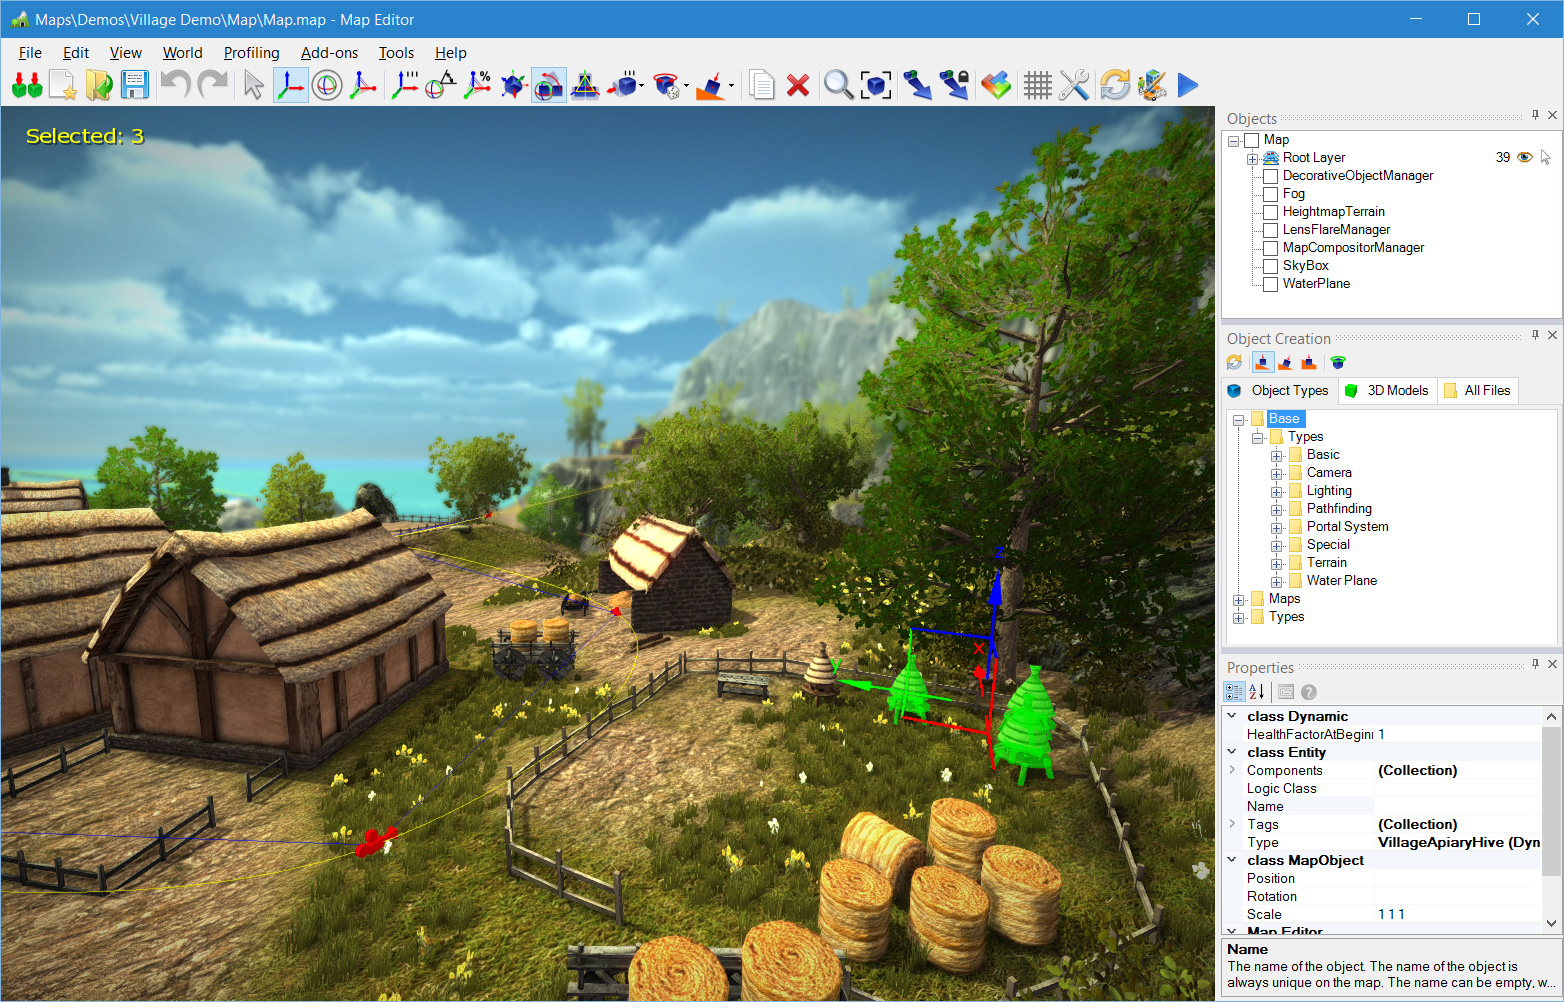 Neoaxis 3d engine 35 released neoaxis 3d engine the latest version features updated editor design a new tool to quickly import 3d models updated example maps as well as multiple minor changes and bug gumiabroncs Images